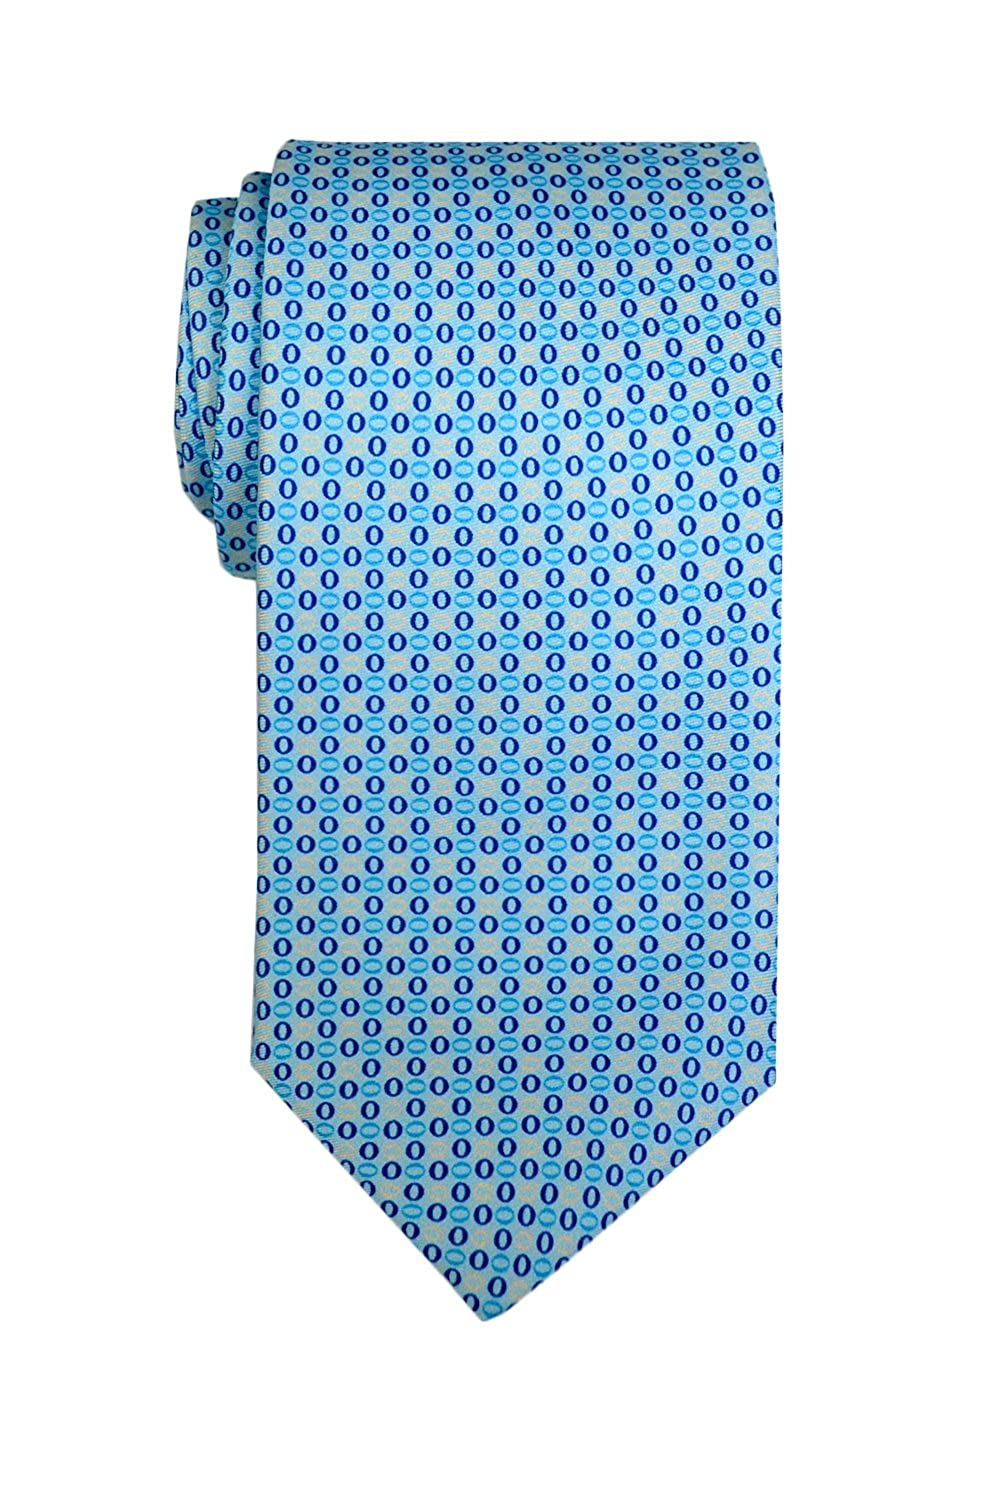 Soft Silk 3.34 Width Remo Sartori Made in Italy Mens Printed Pattern Necktie